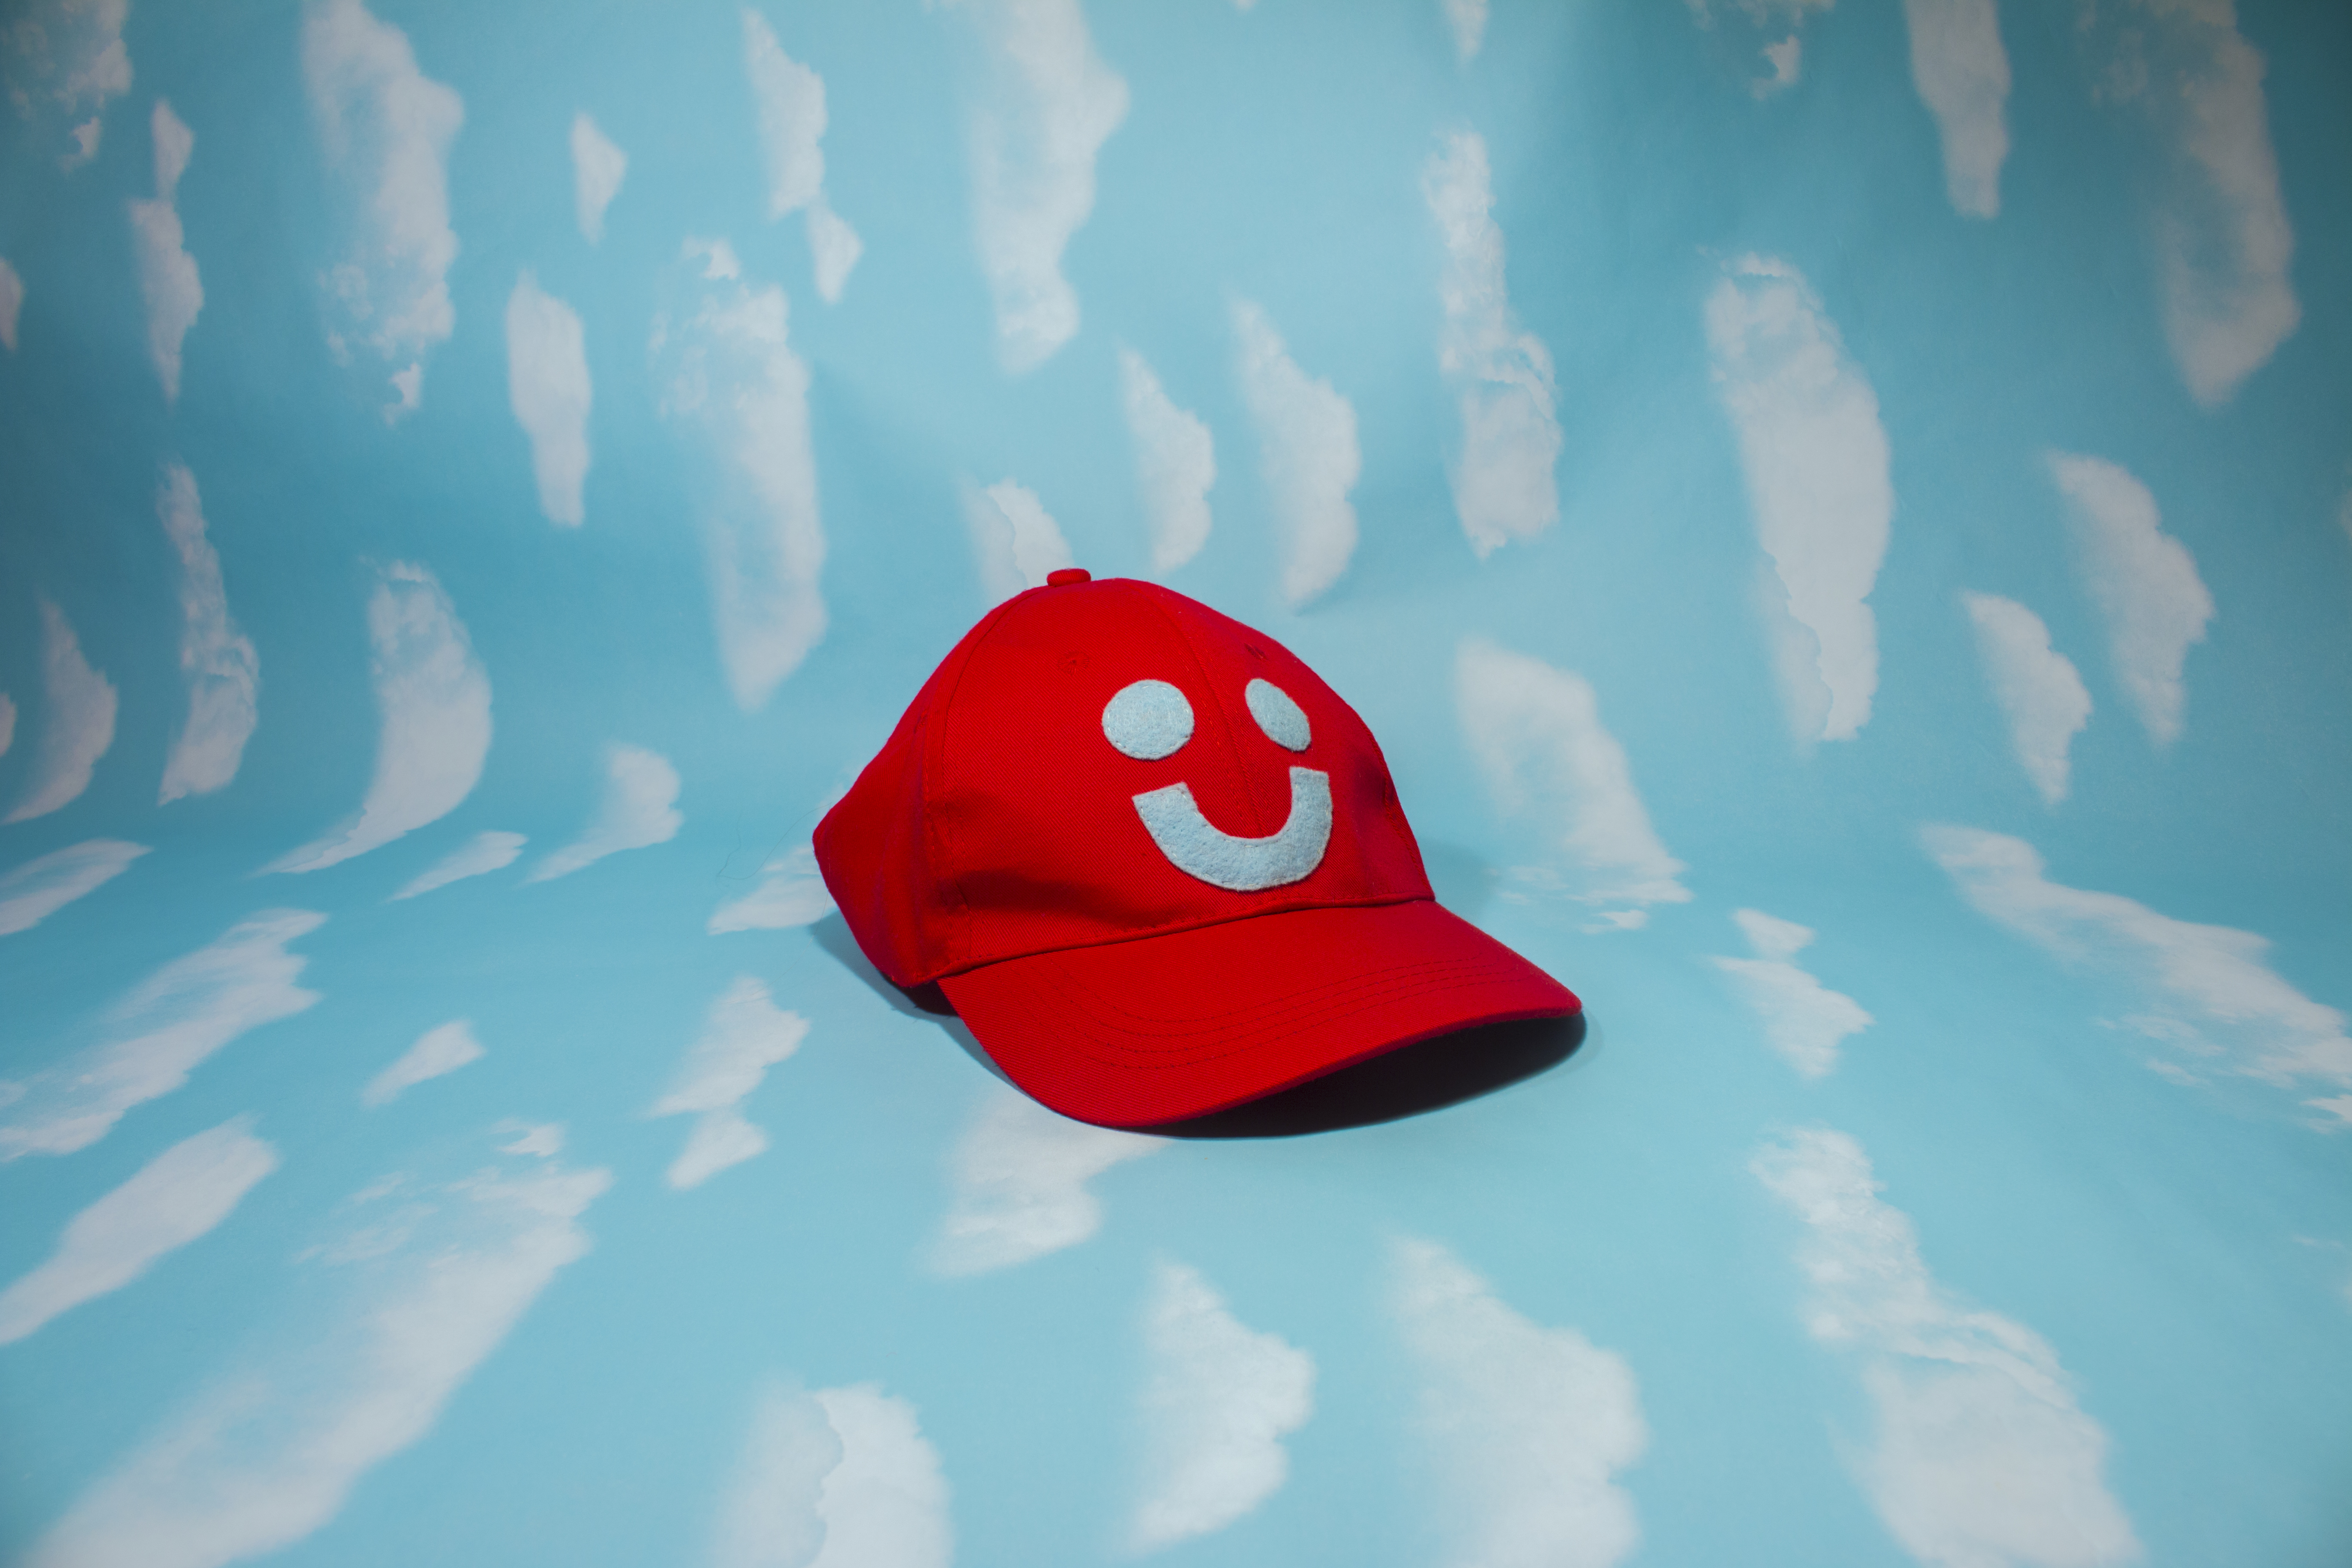 red smiley hat